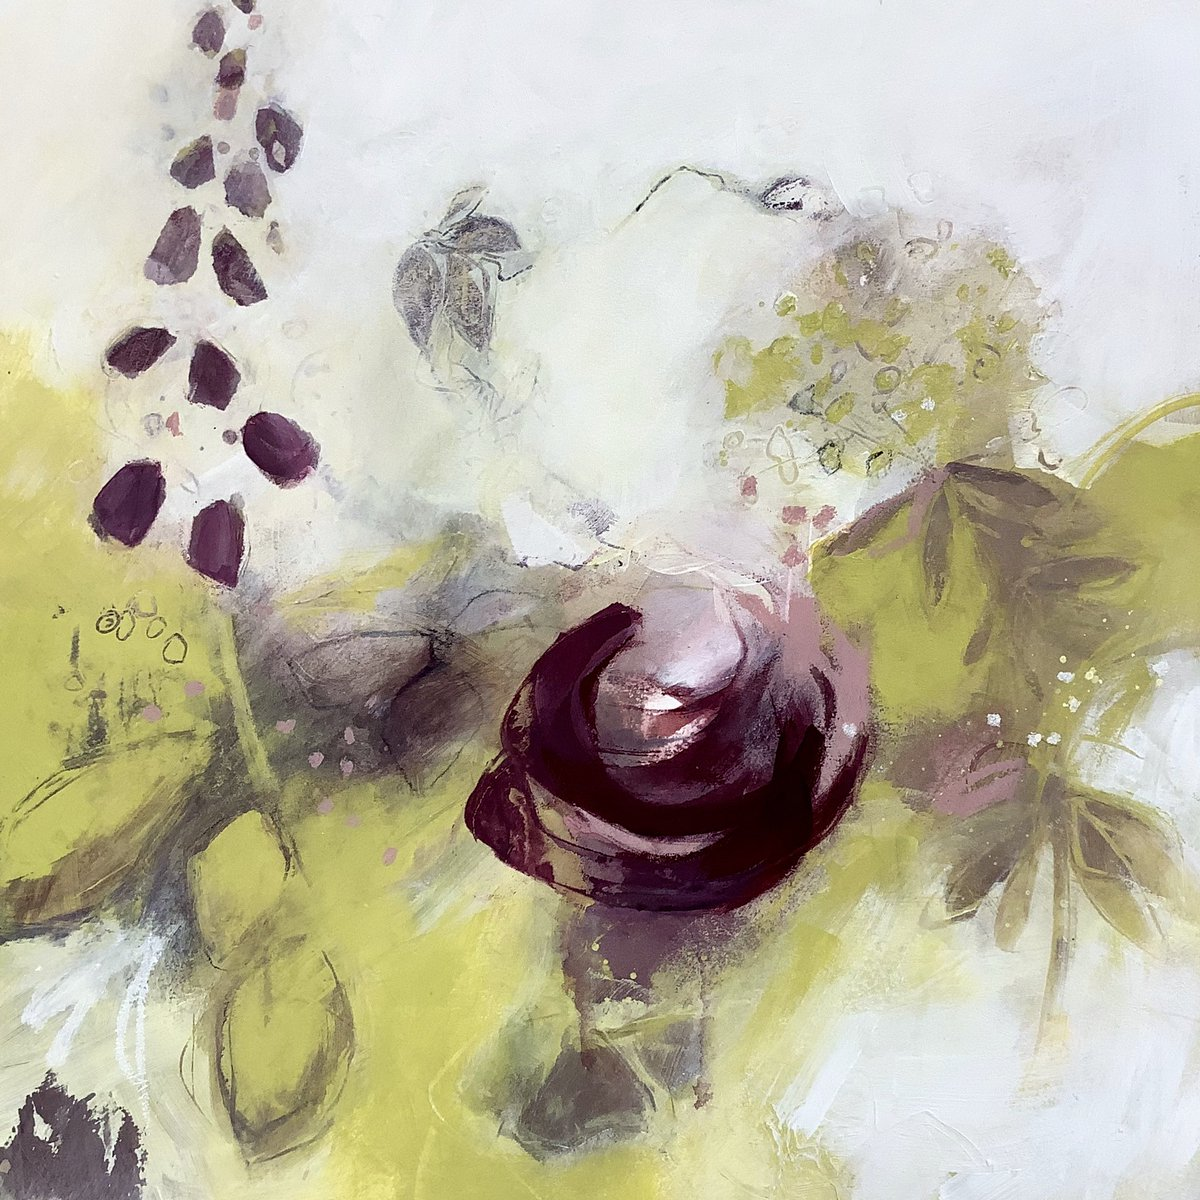 SOLD! This #abstractgarden painting will soon be on its way to its forever home in Manchester. More available on my website & more to follow soon. https://www.marifrench.com/gallery.html  #abstractartist #abstractflowers #loveyourgarden #artinlockdown #artforlife #summergarden #gardenabstractpic.twitter.com/o3edc5s7fR